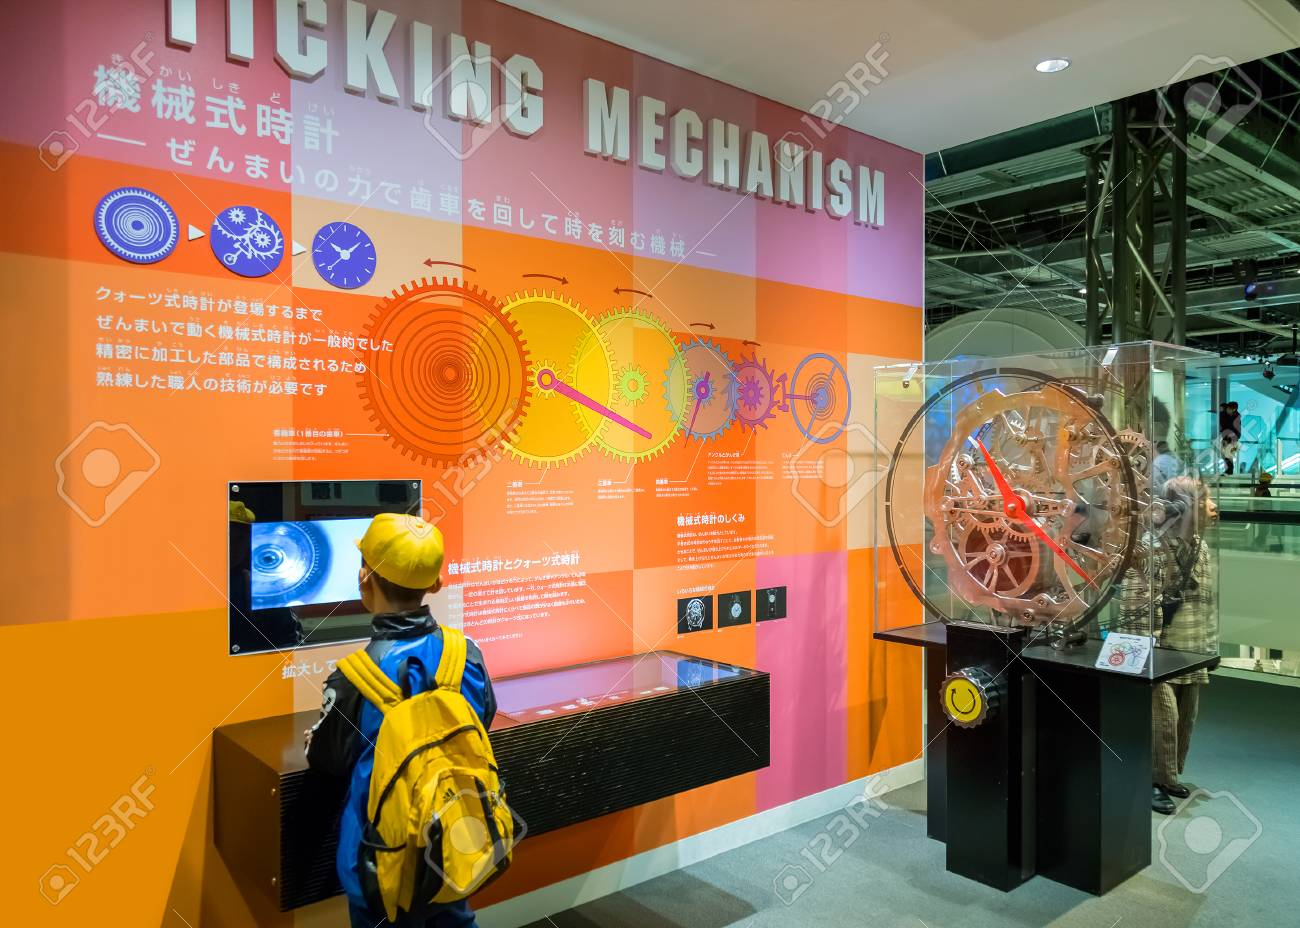 NAGOYA, JAPAN - 18. November 2015: Nagoya City Science Museum, Das ...